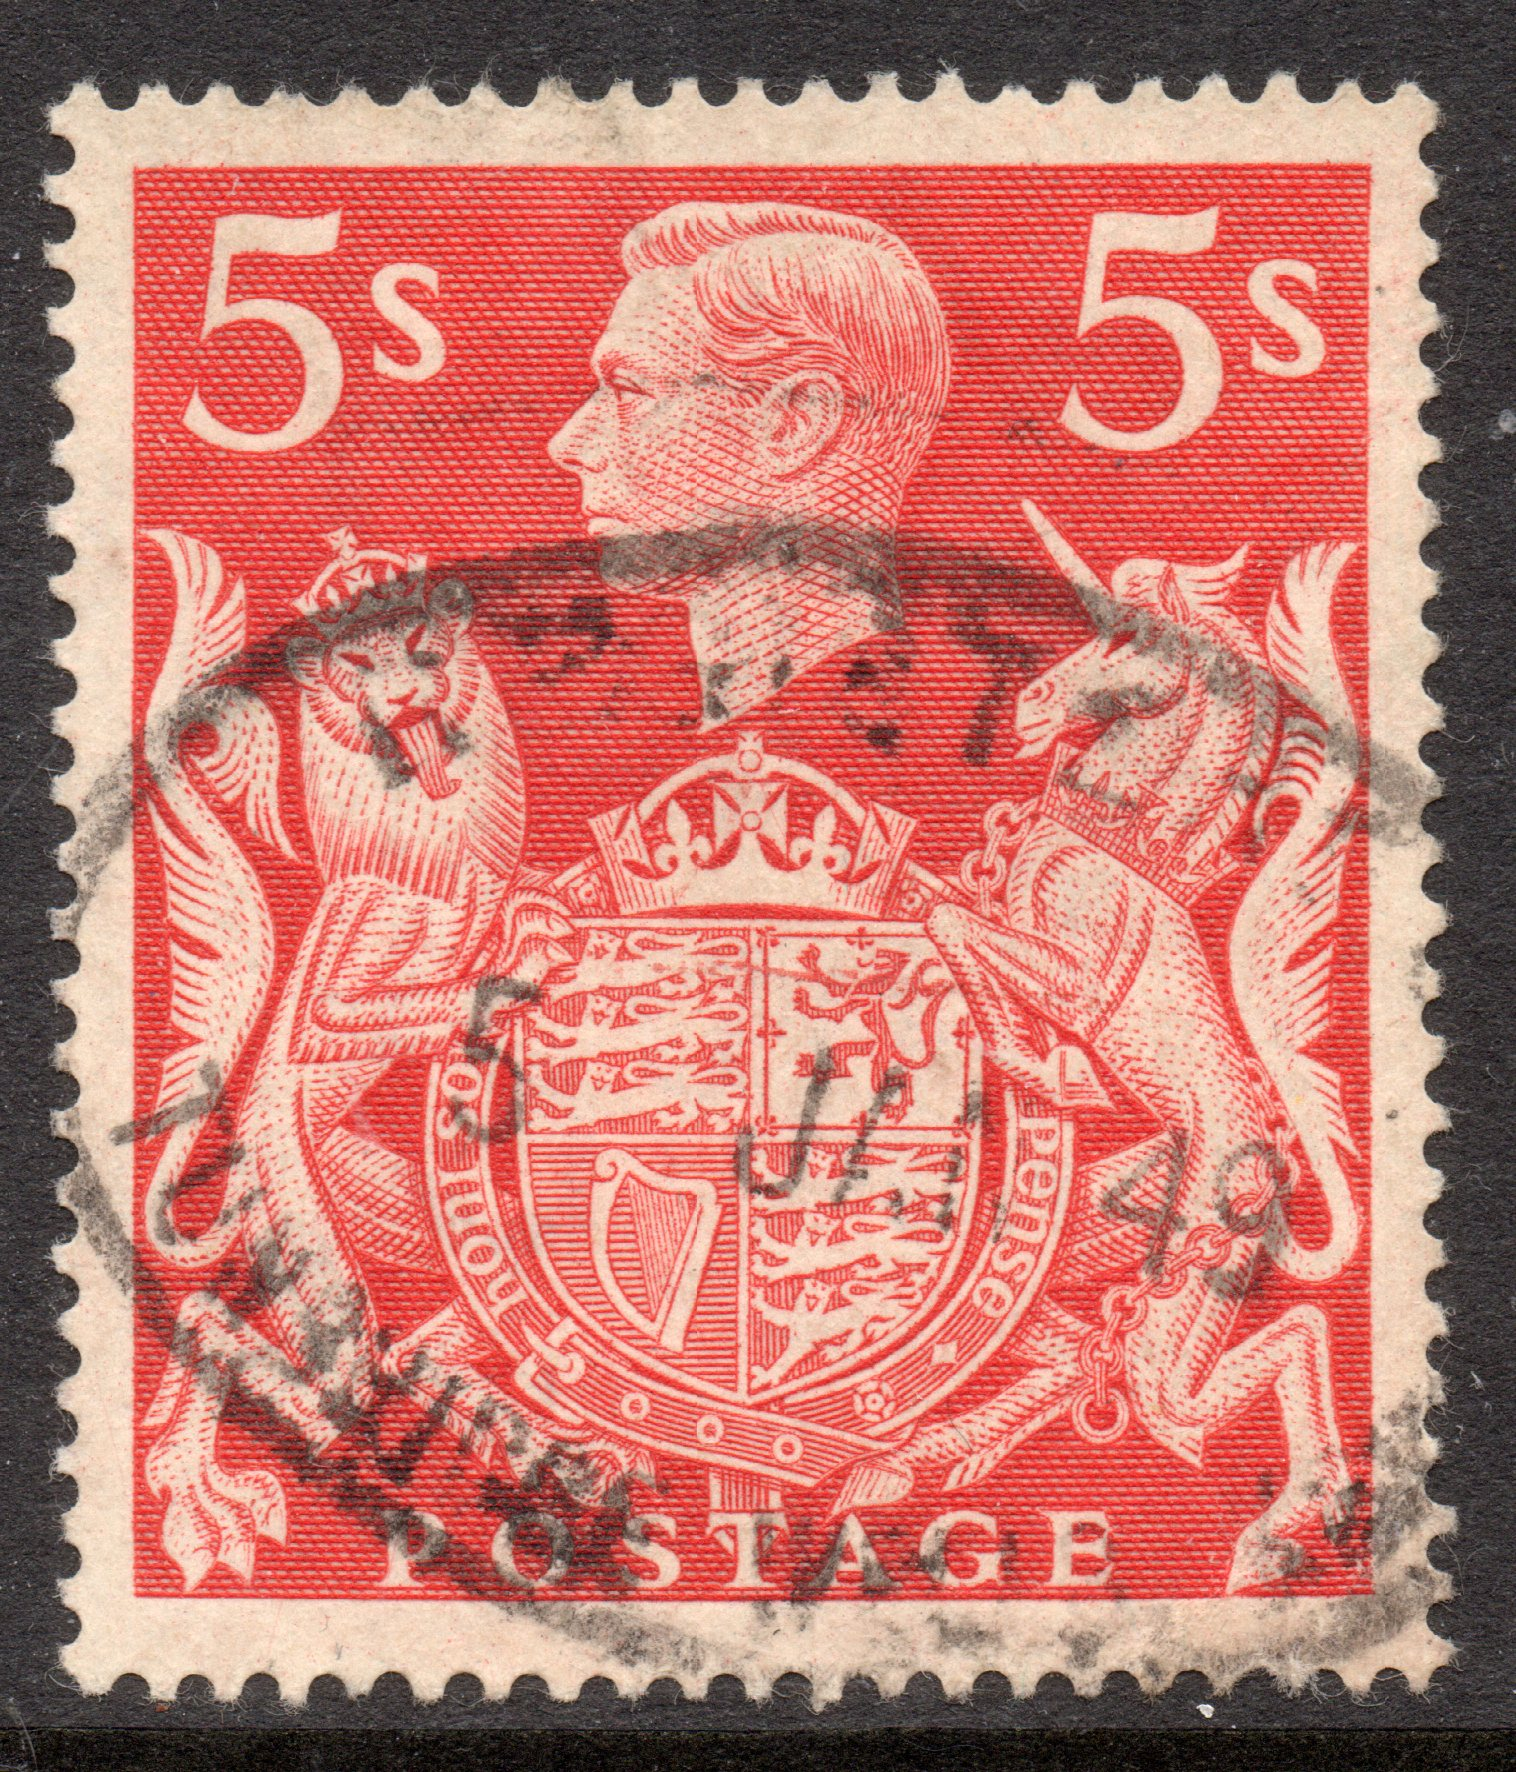 1939 5s Red Used 'Horizontal Scratch on & Left of Lion' Variety